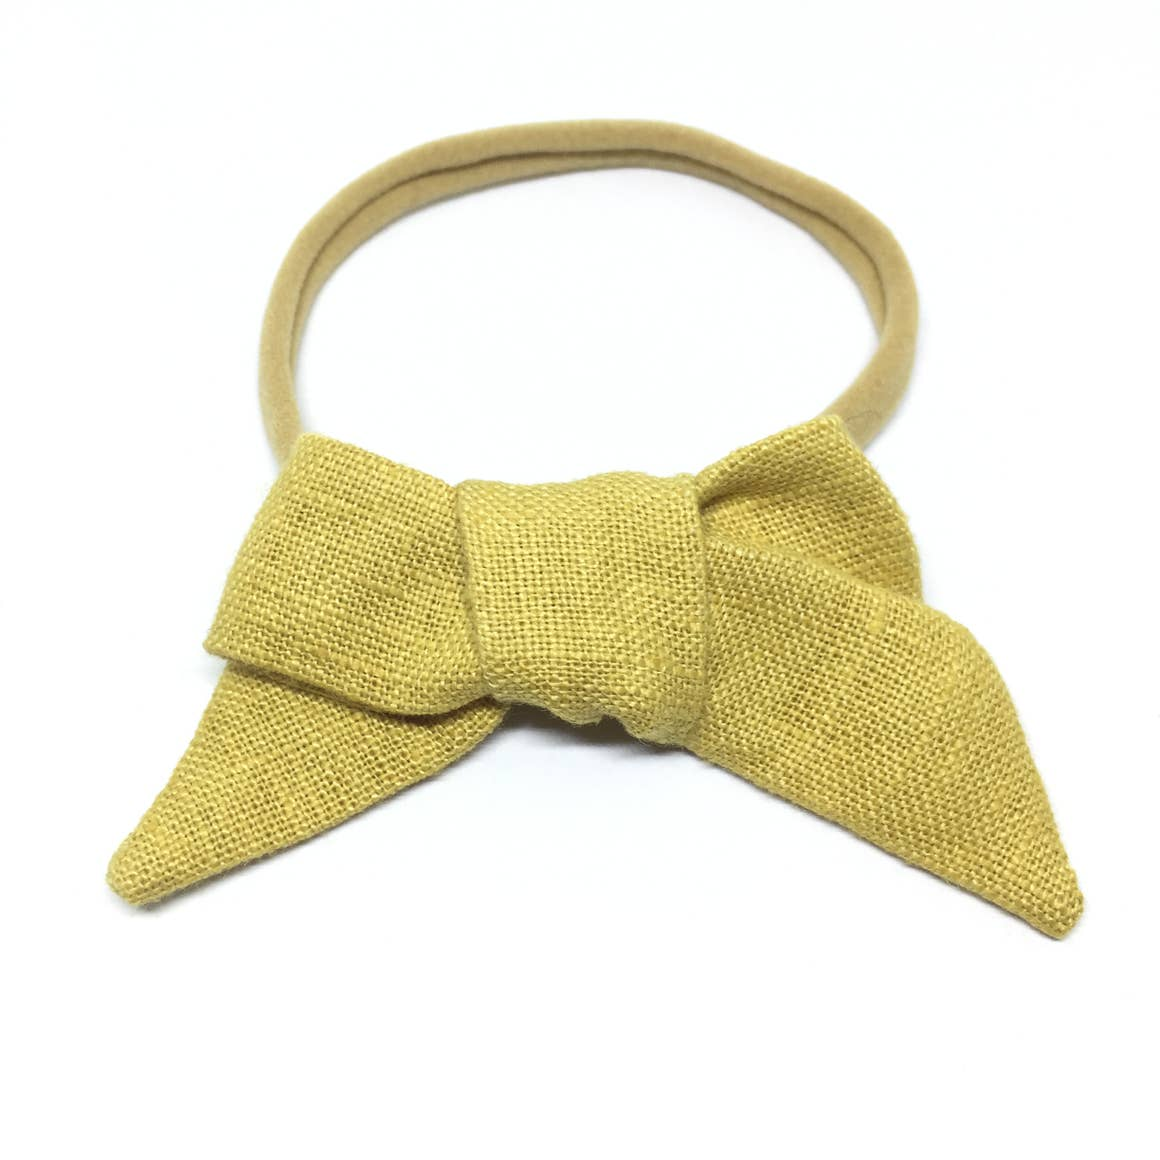 The Tiny Bow Shop Mustard Organic Linen Headband